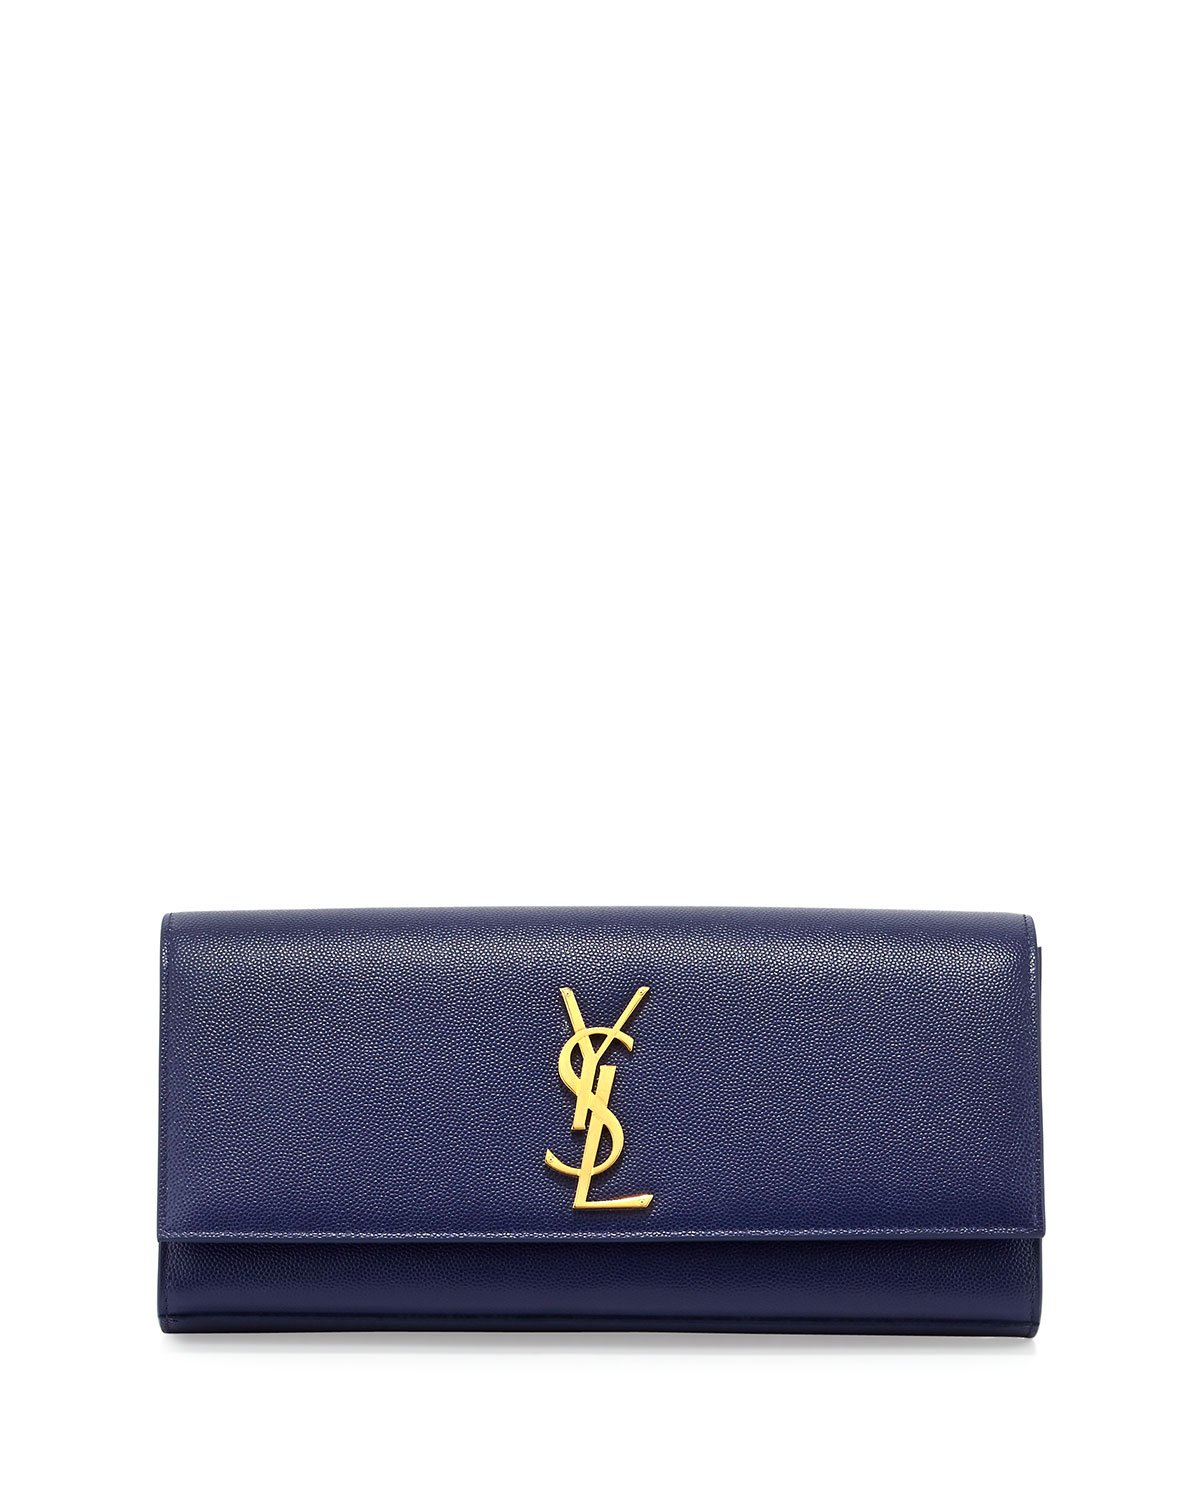 Image Result For Ysl Purse